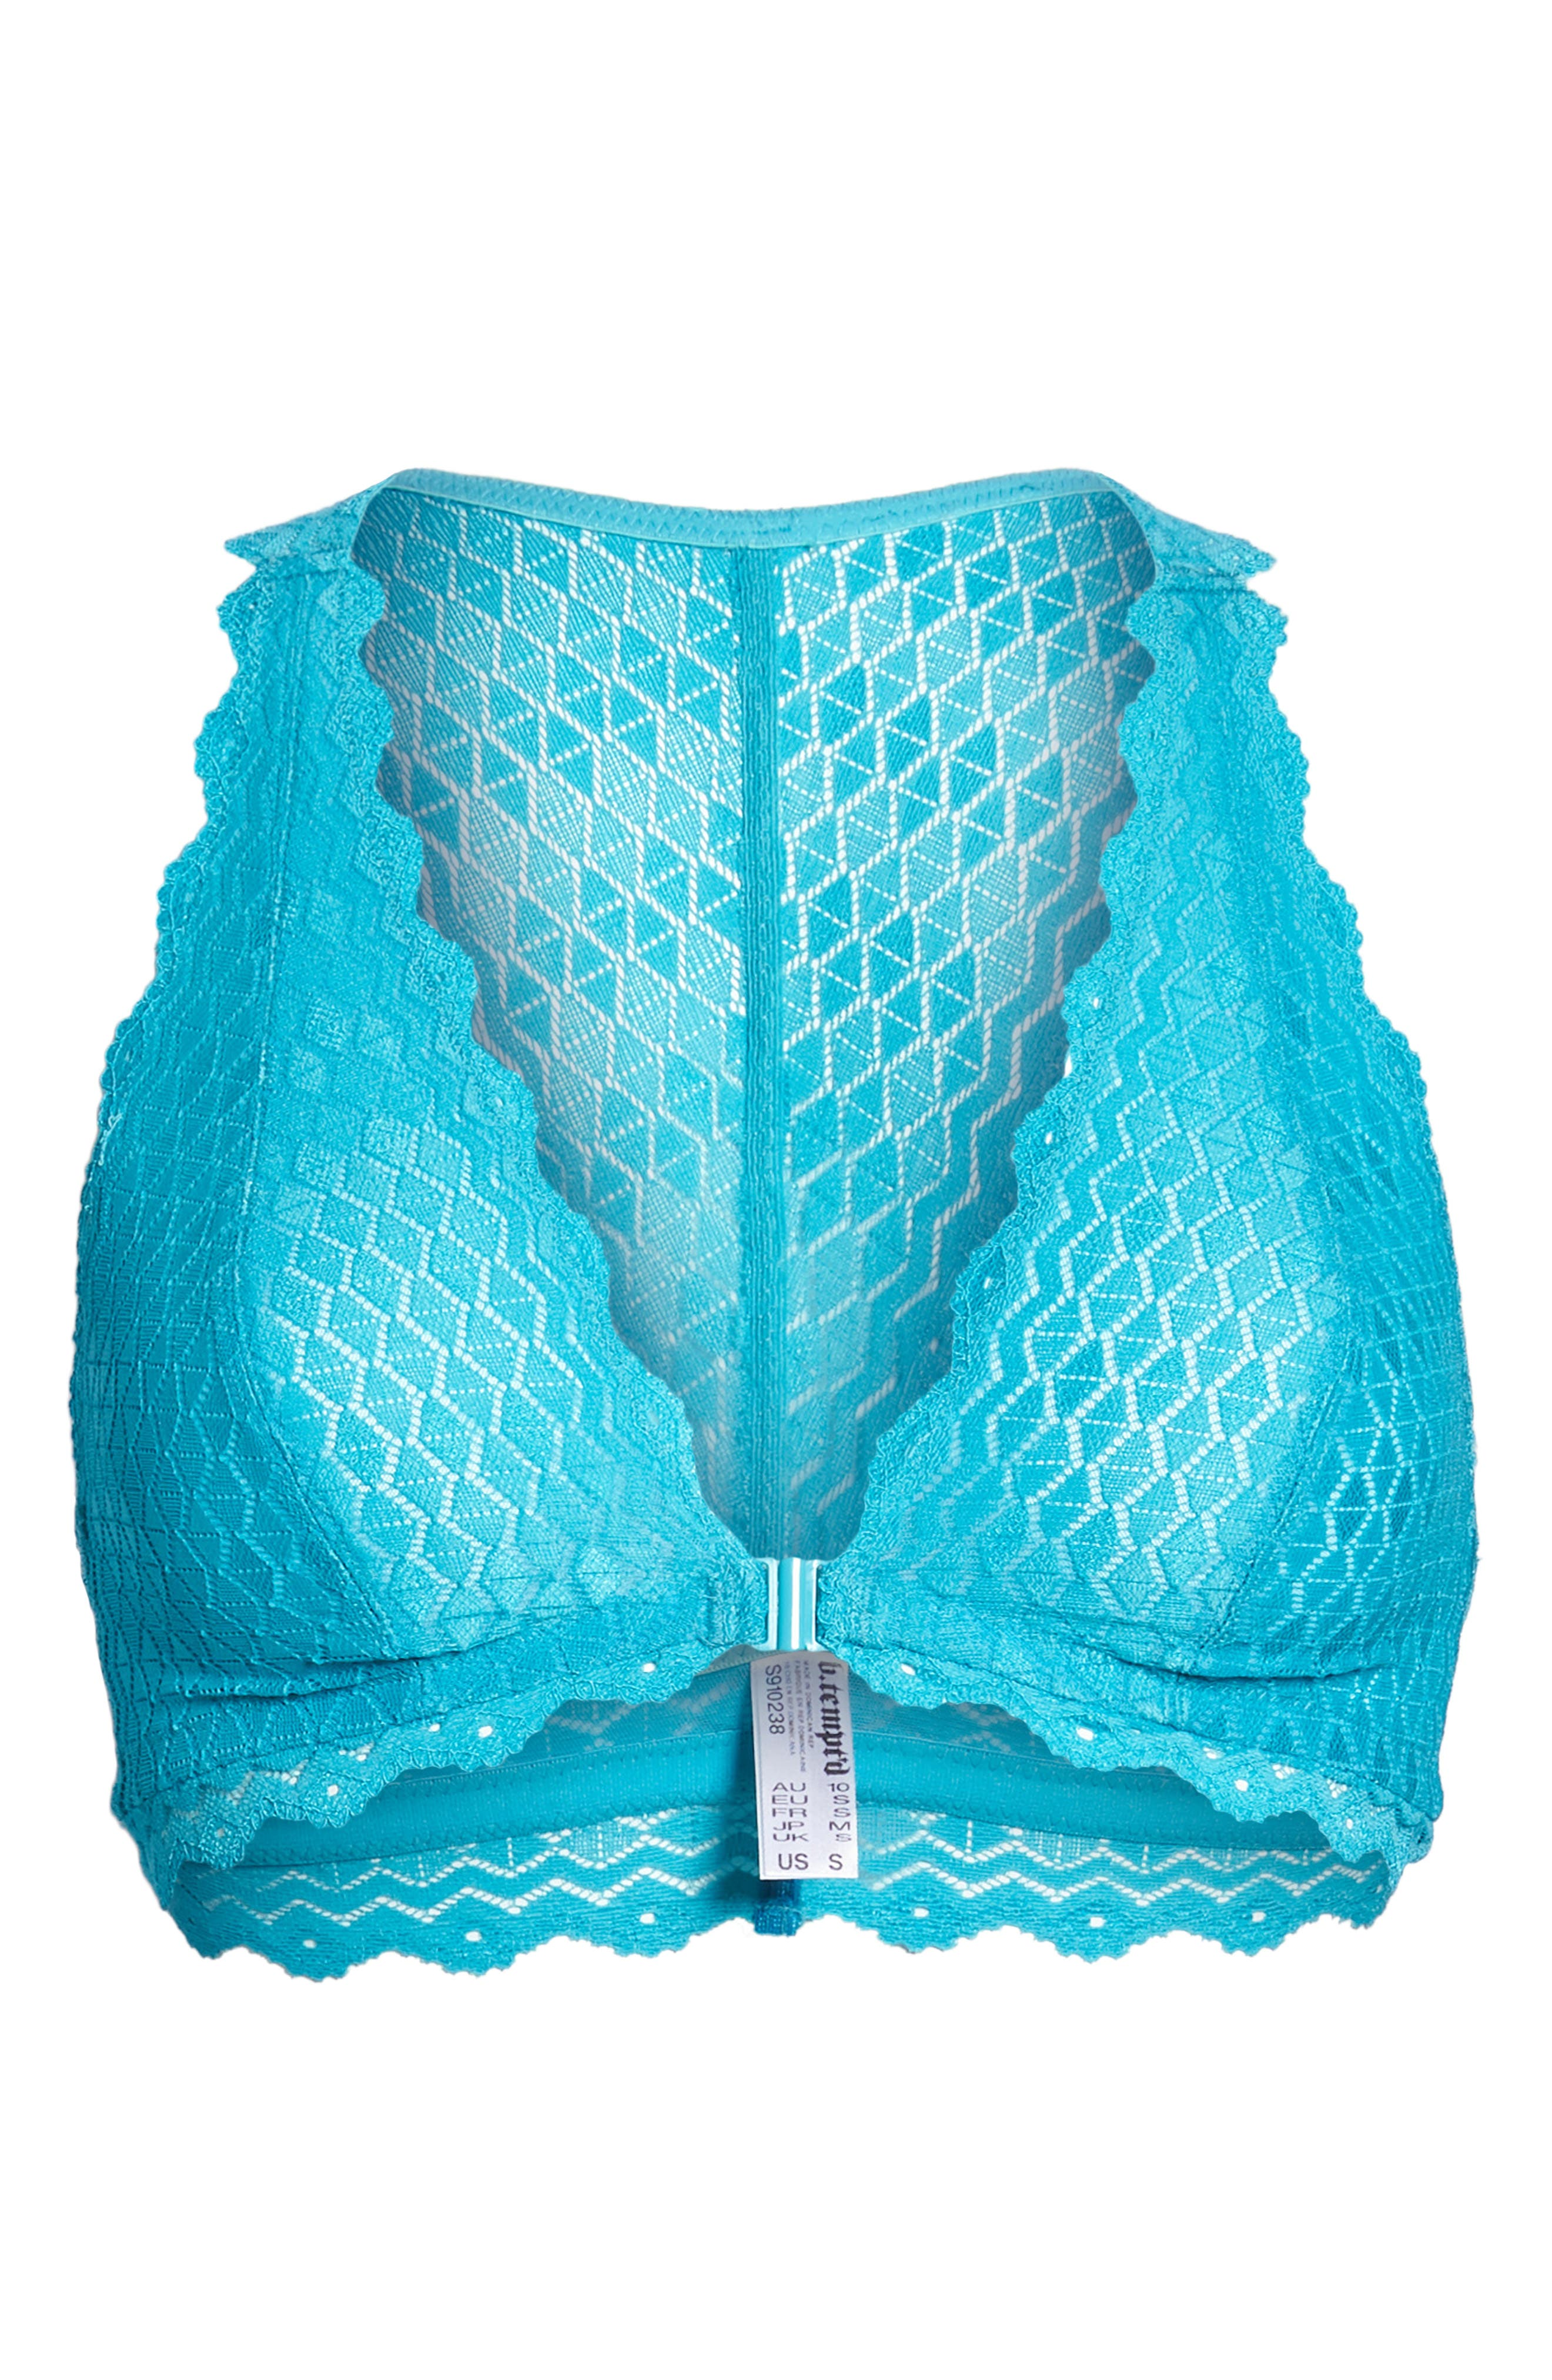 b.tempted by Wacoal Plunge Lace Bralette,                             Alternate thumbnail 9, color,                             Peacock Blue